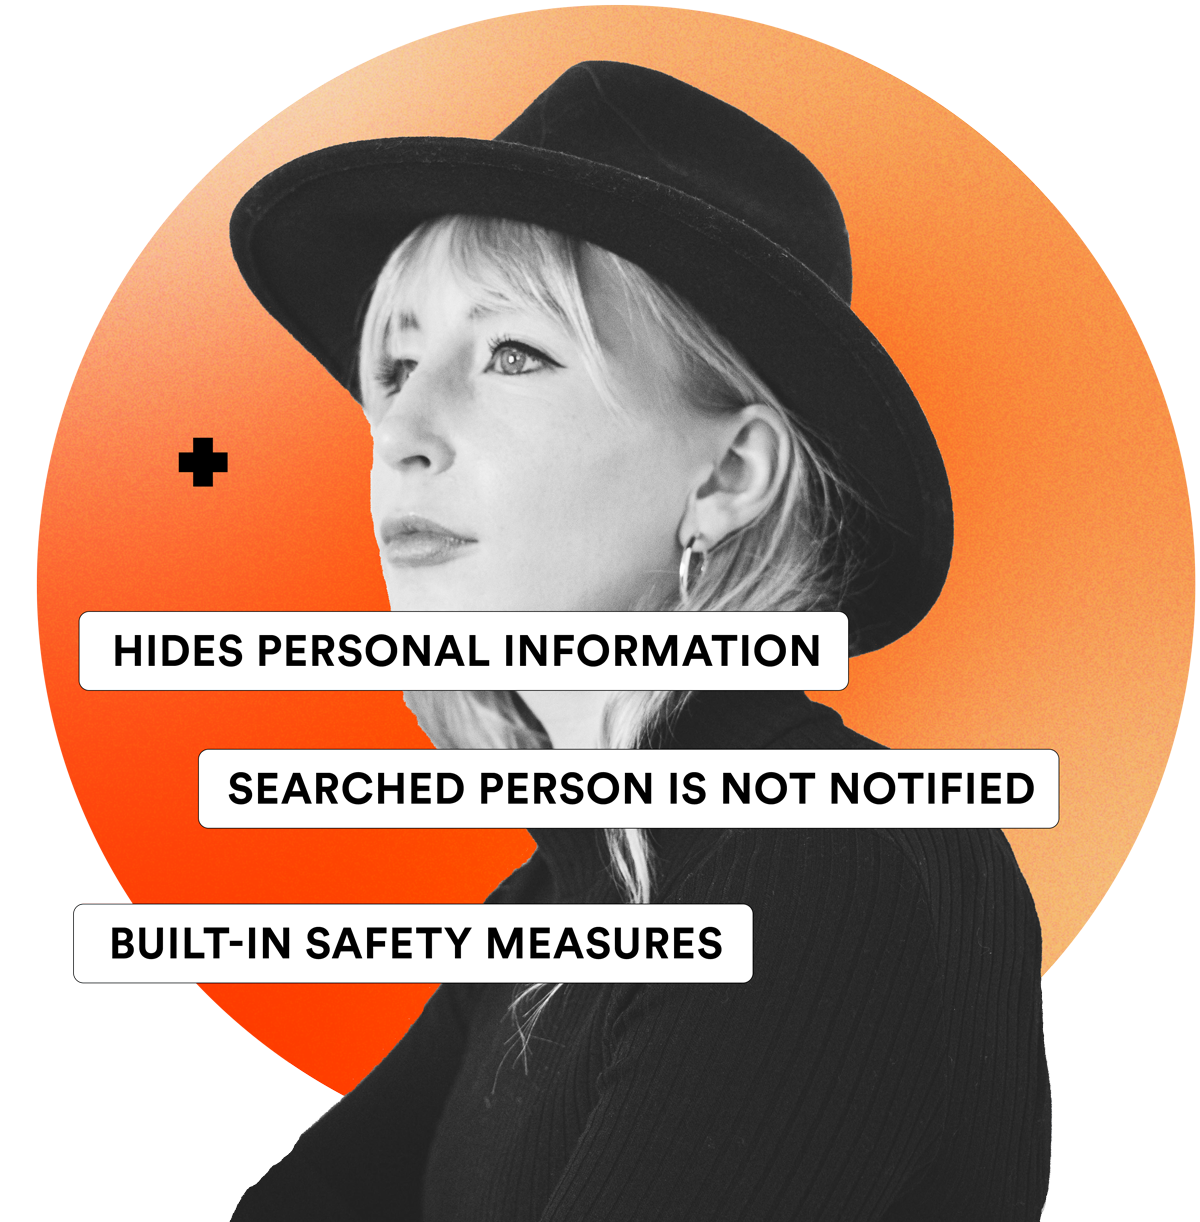 Hides personal information, searched person is not notified and built-in safety measures